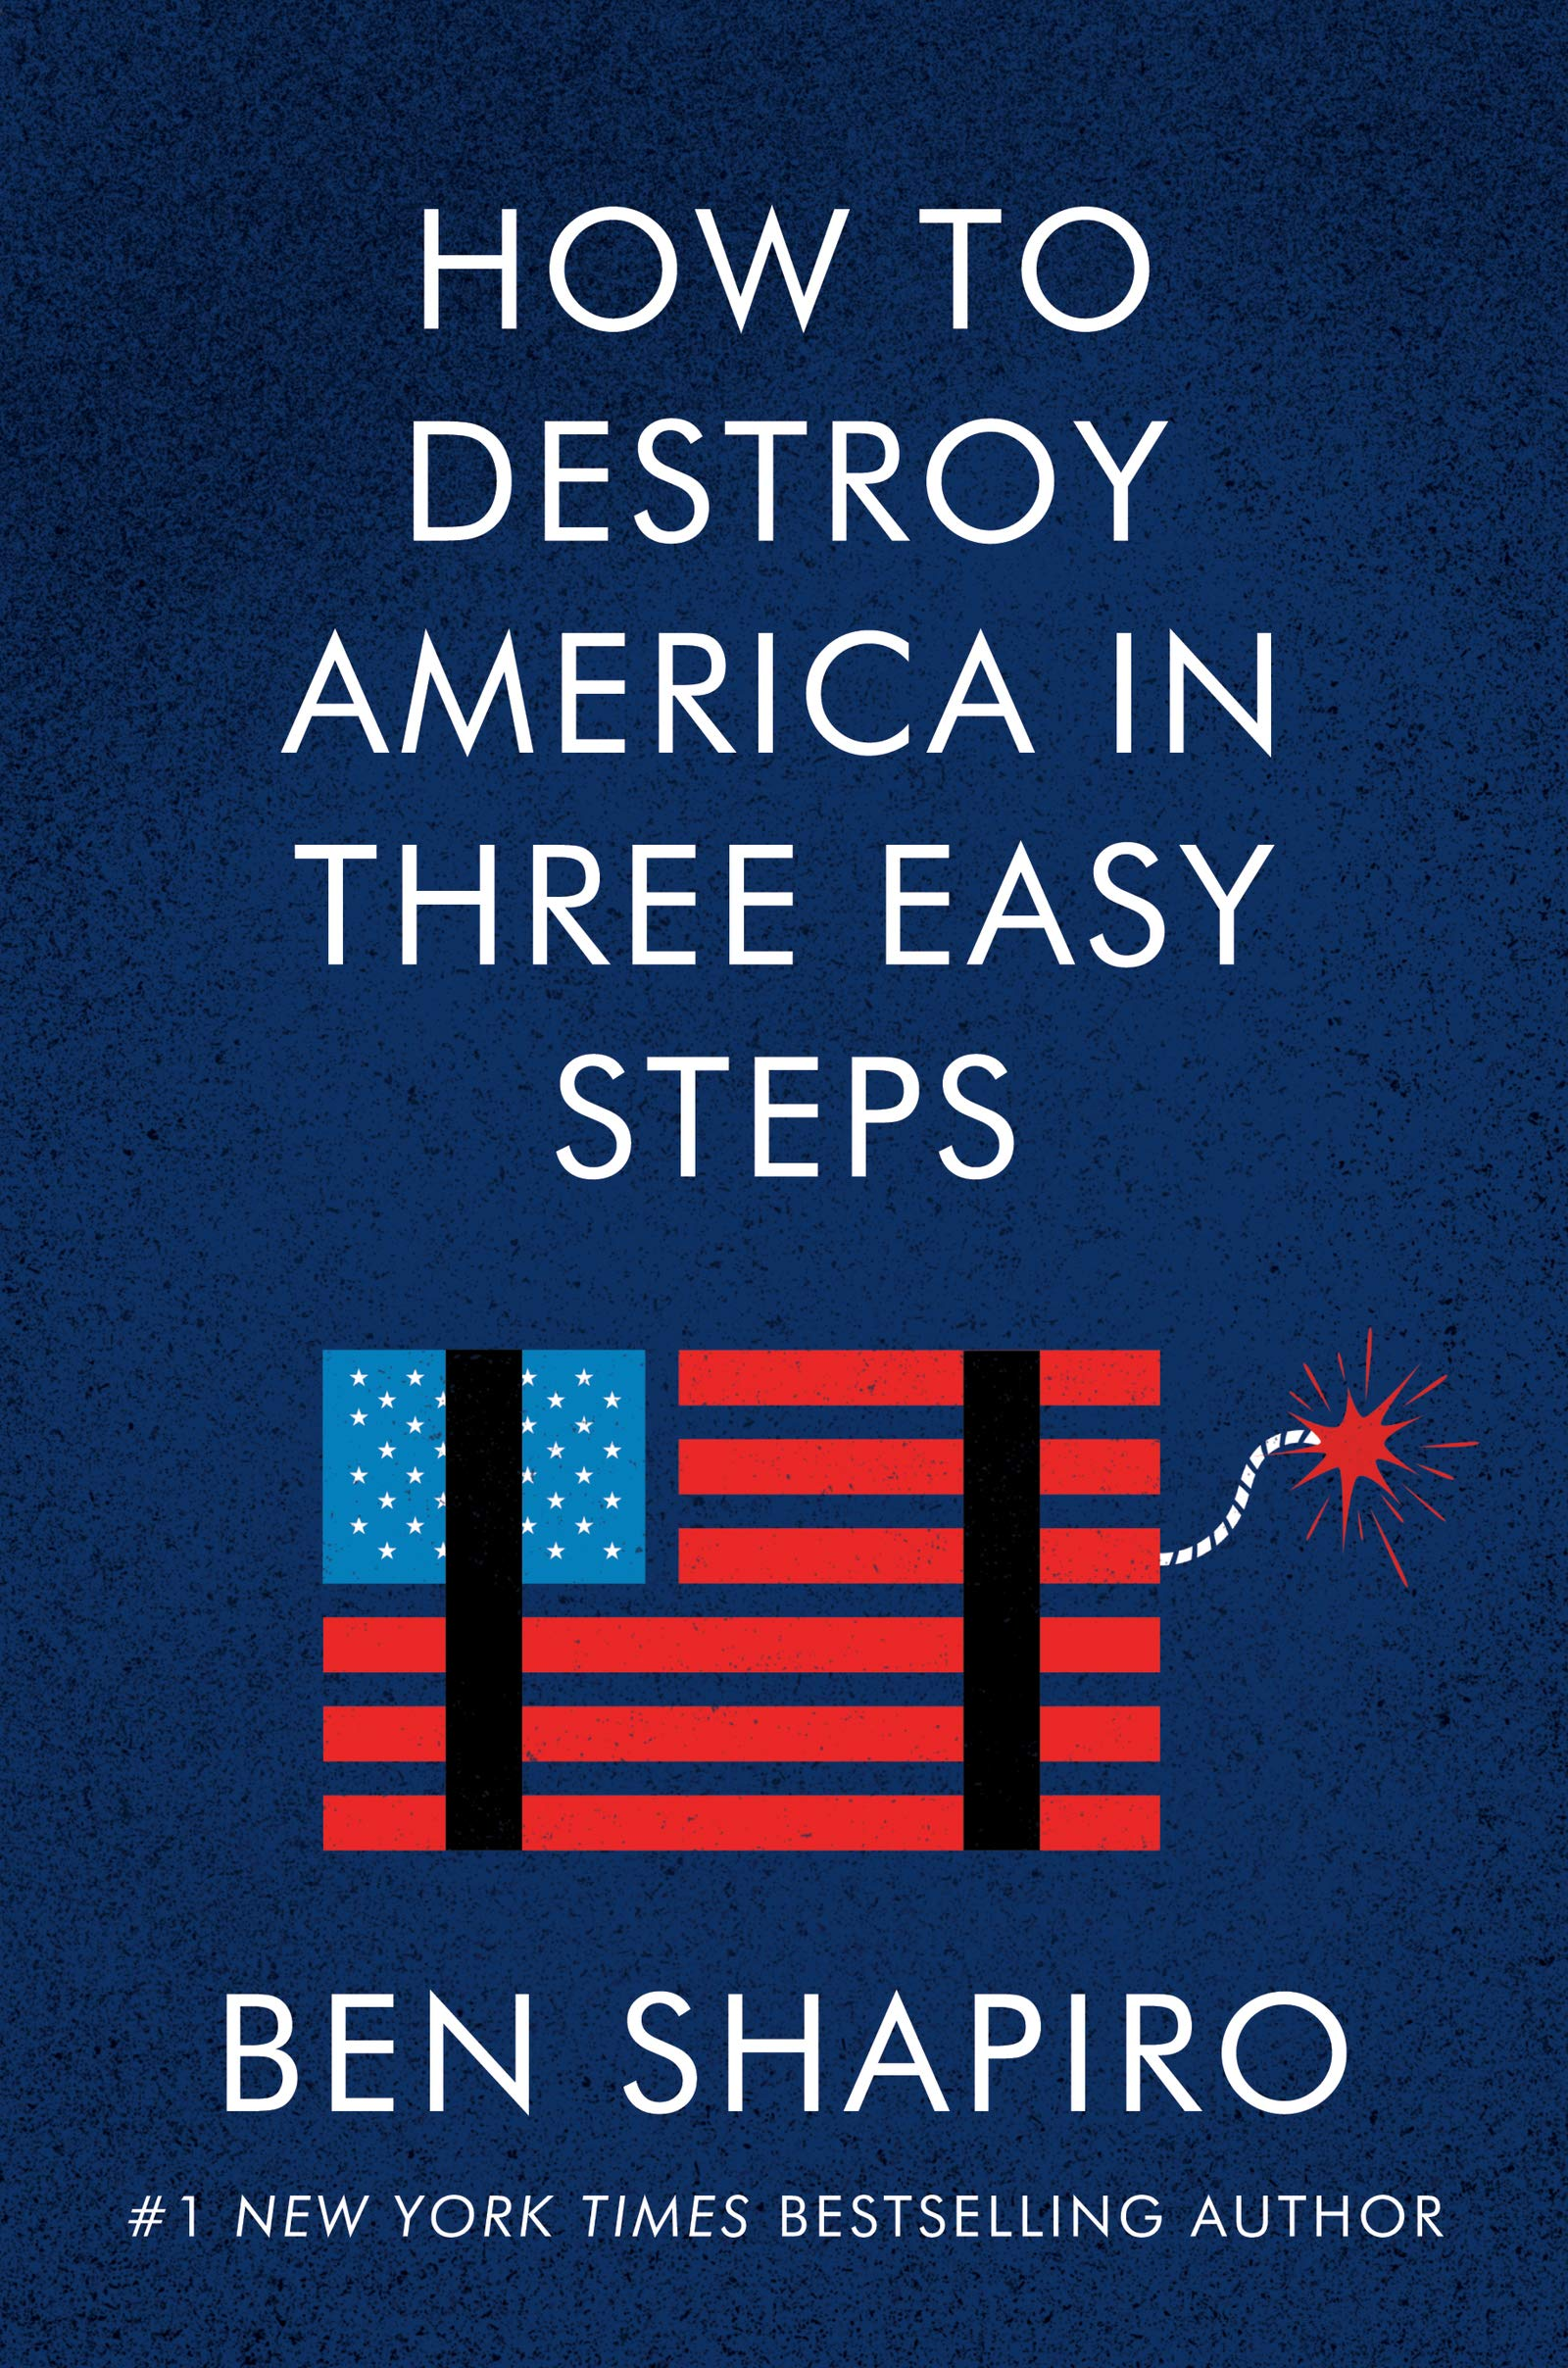 How to Destroy America in Three Easy Steps - Kindle edition by Shapiro, Ben. Politics & Social Sciences Kindle eBooks @ Amazon.com.